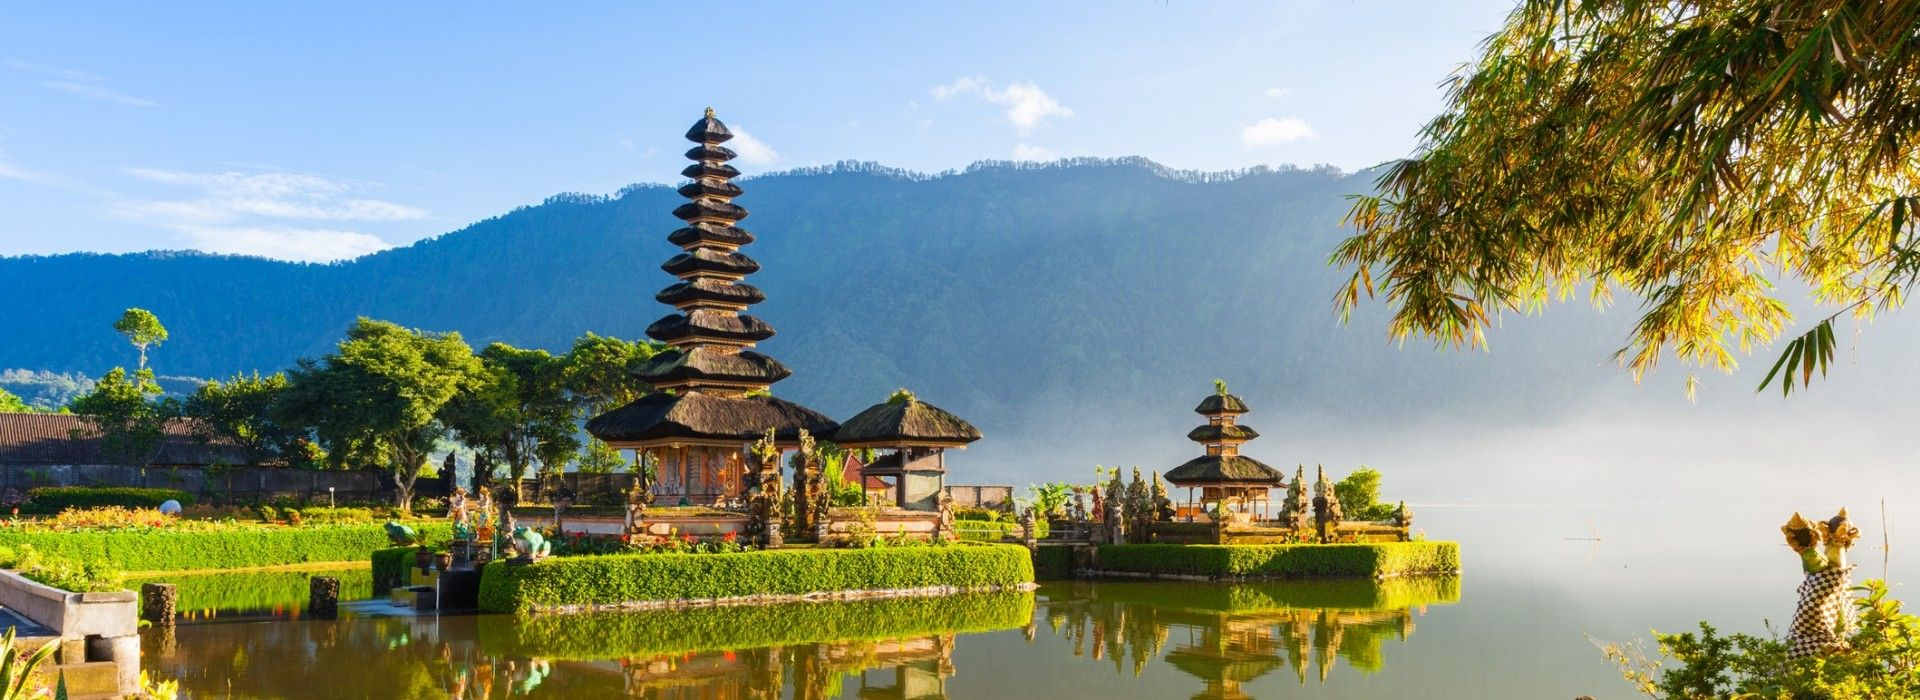 Sightseeing, attractions, culture and history Tours in Bali